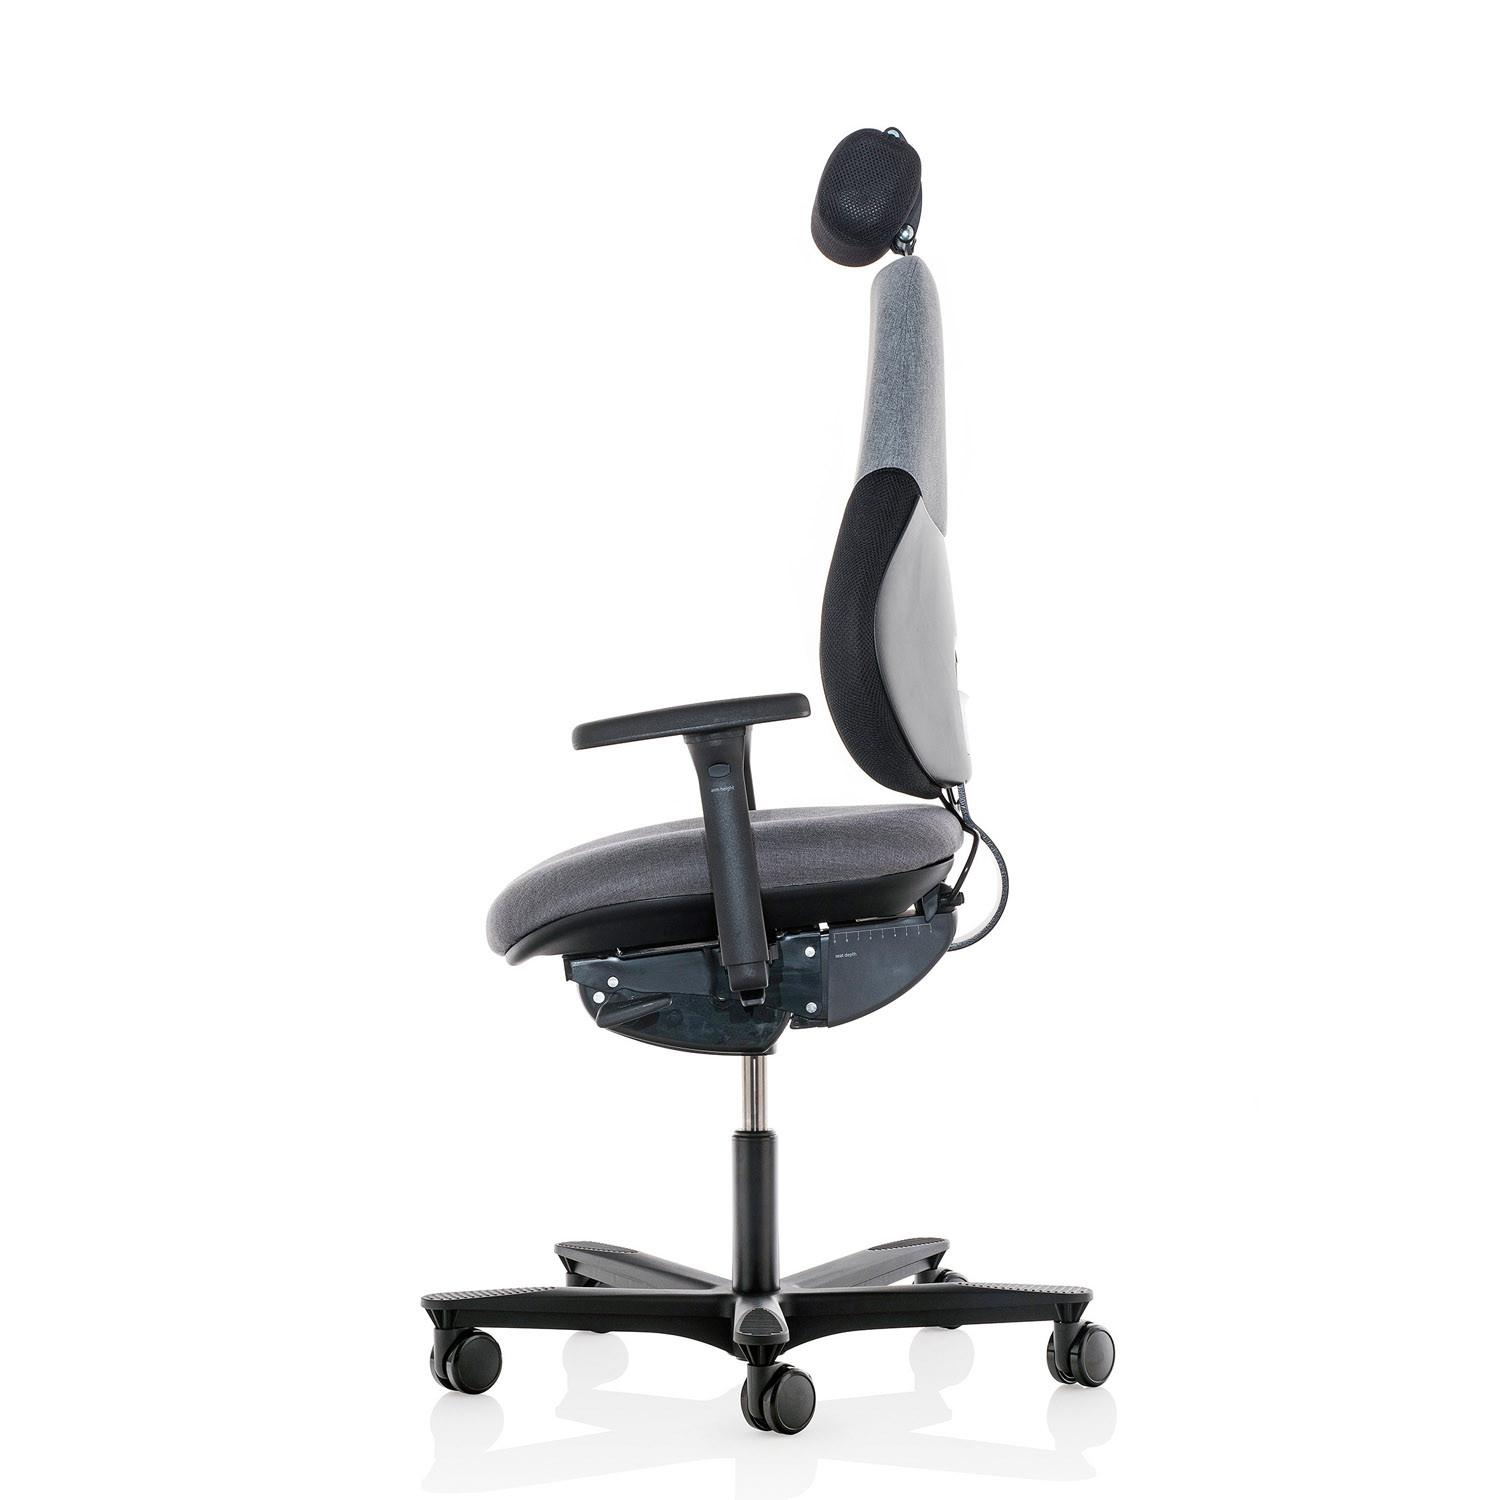 Flo Ergonomic Chair Side View